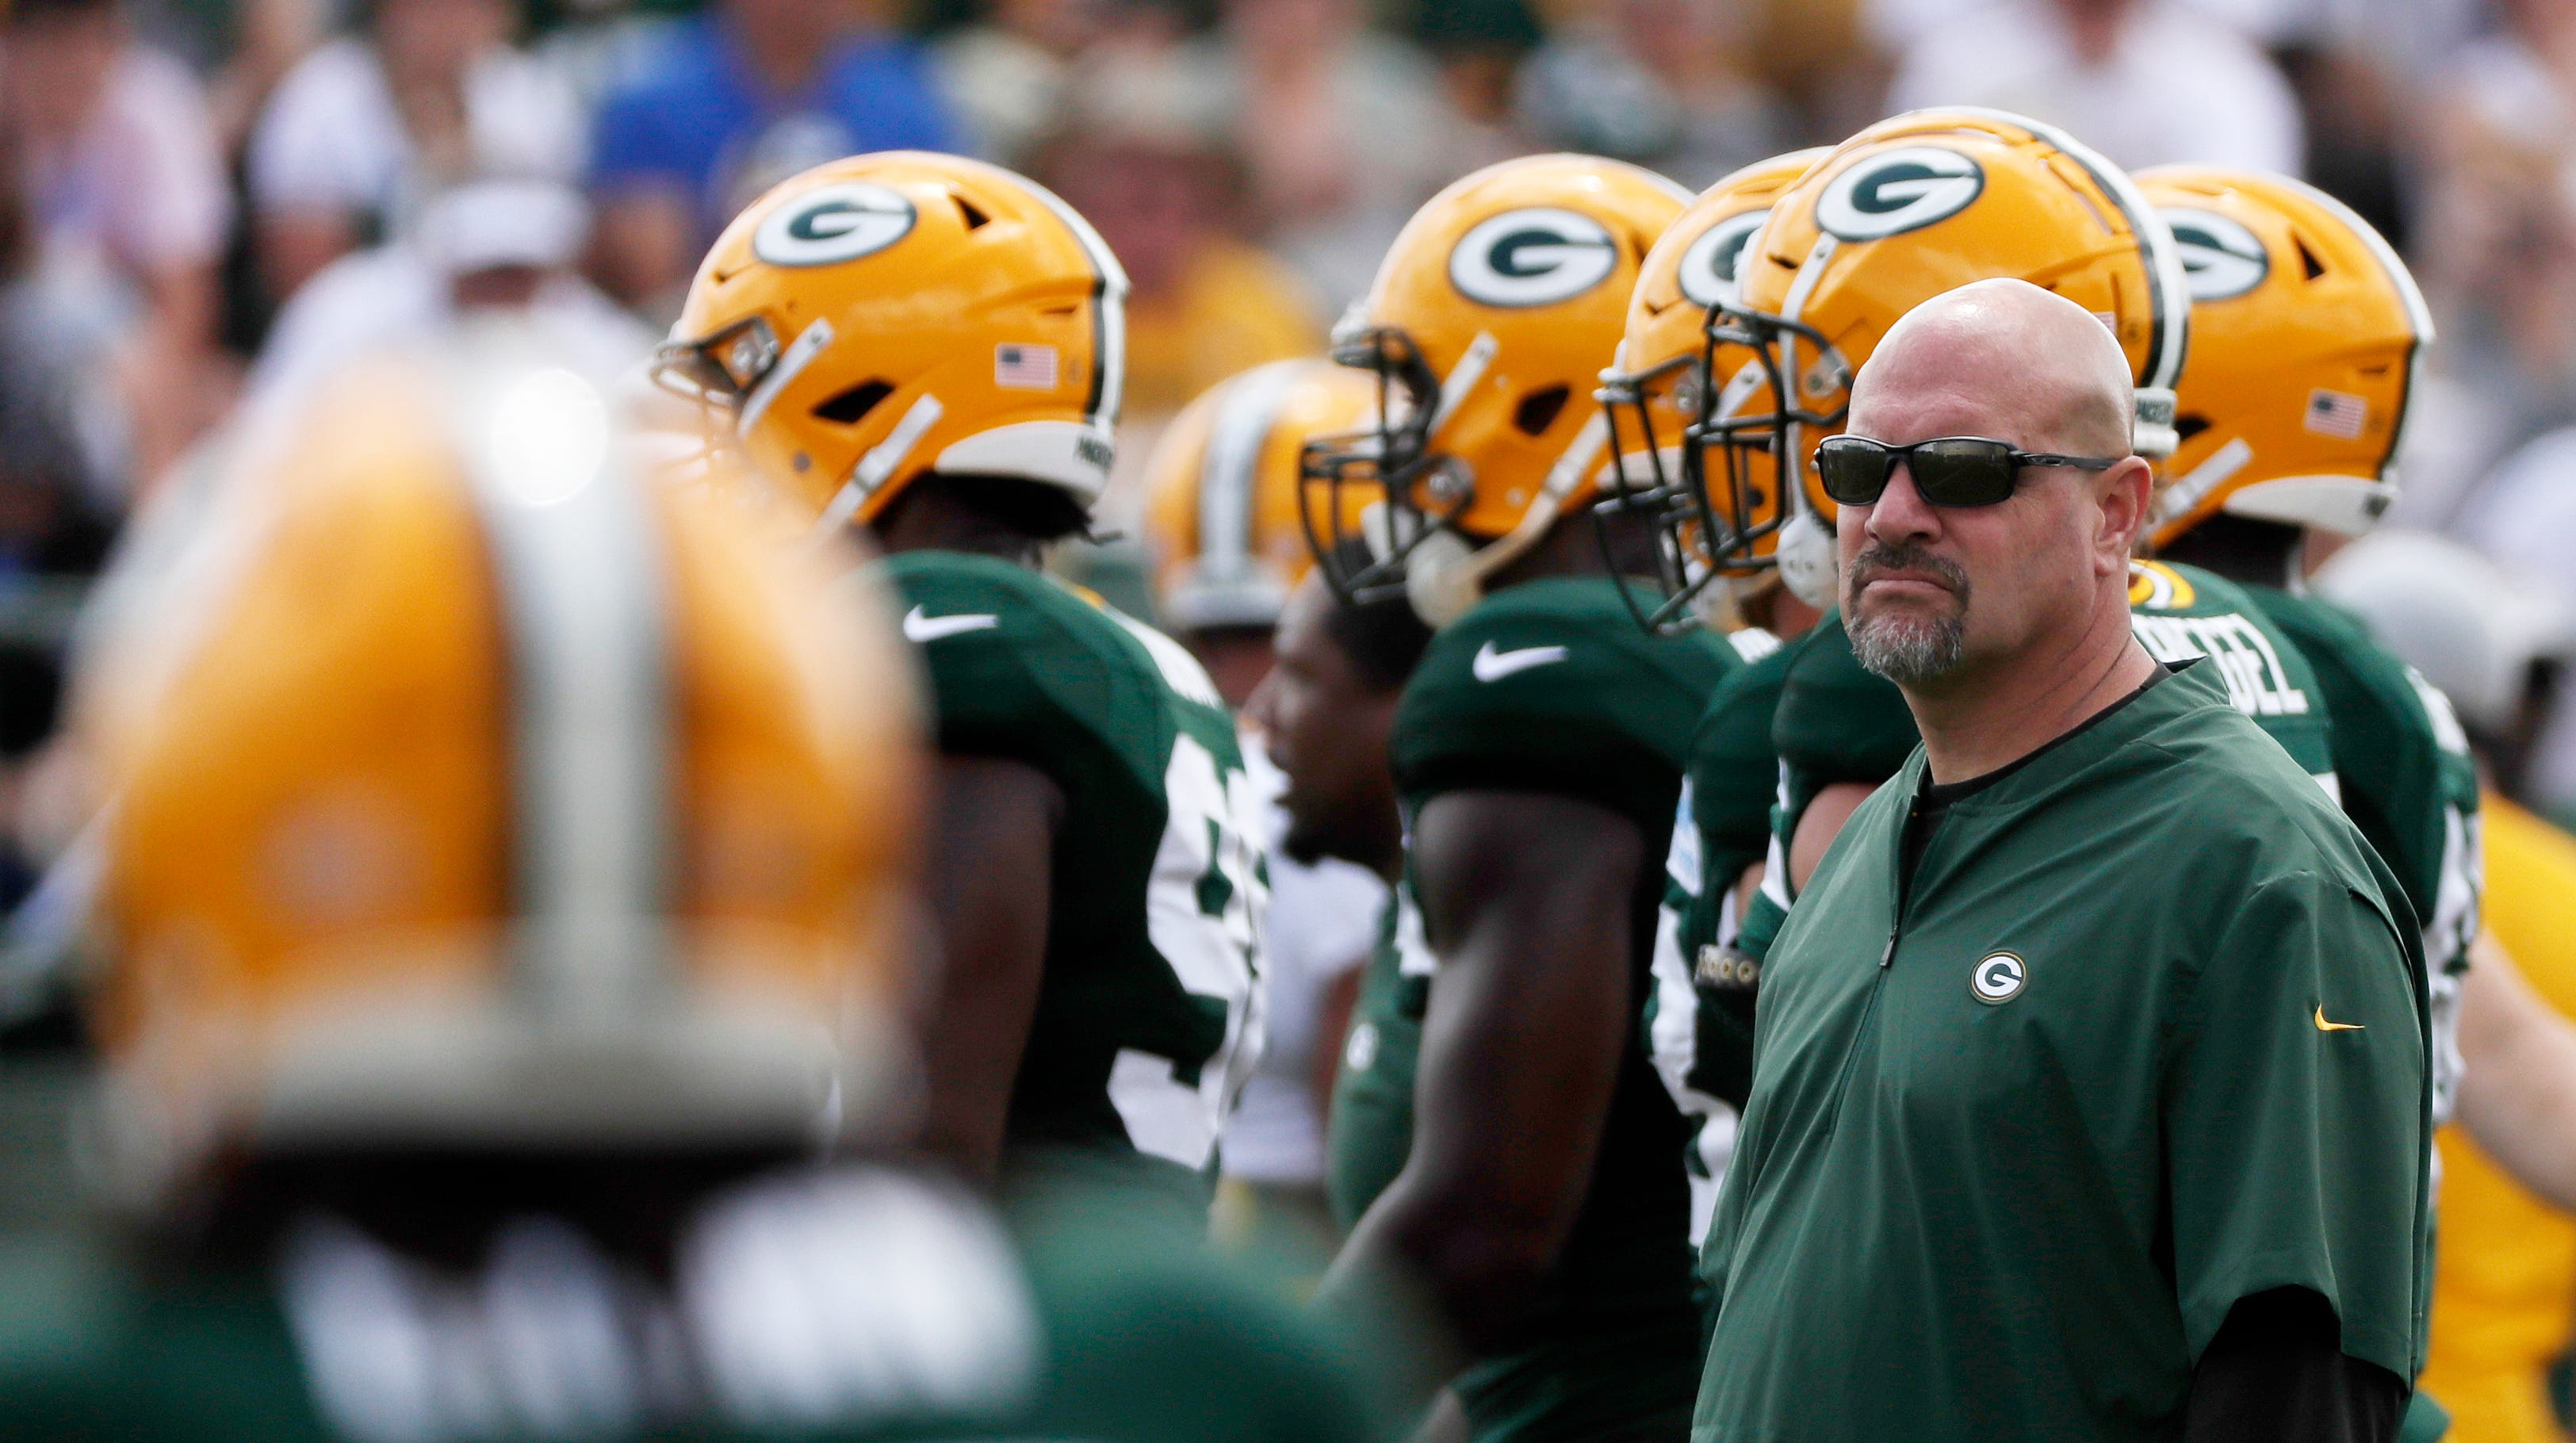 470e65af-8069-4320-b4d8-653424133aae-gpg_packerscamp_080318_abw203